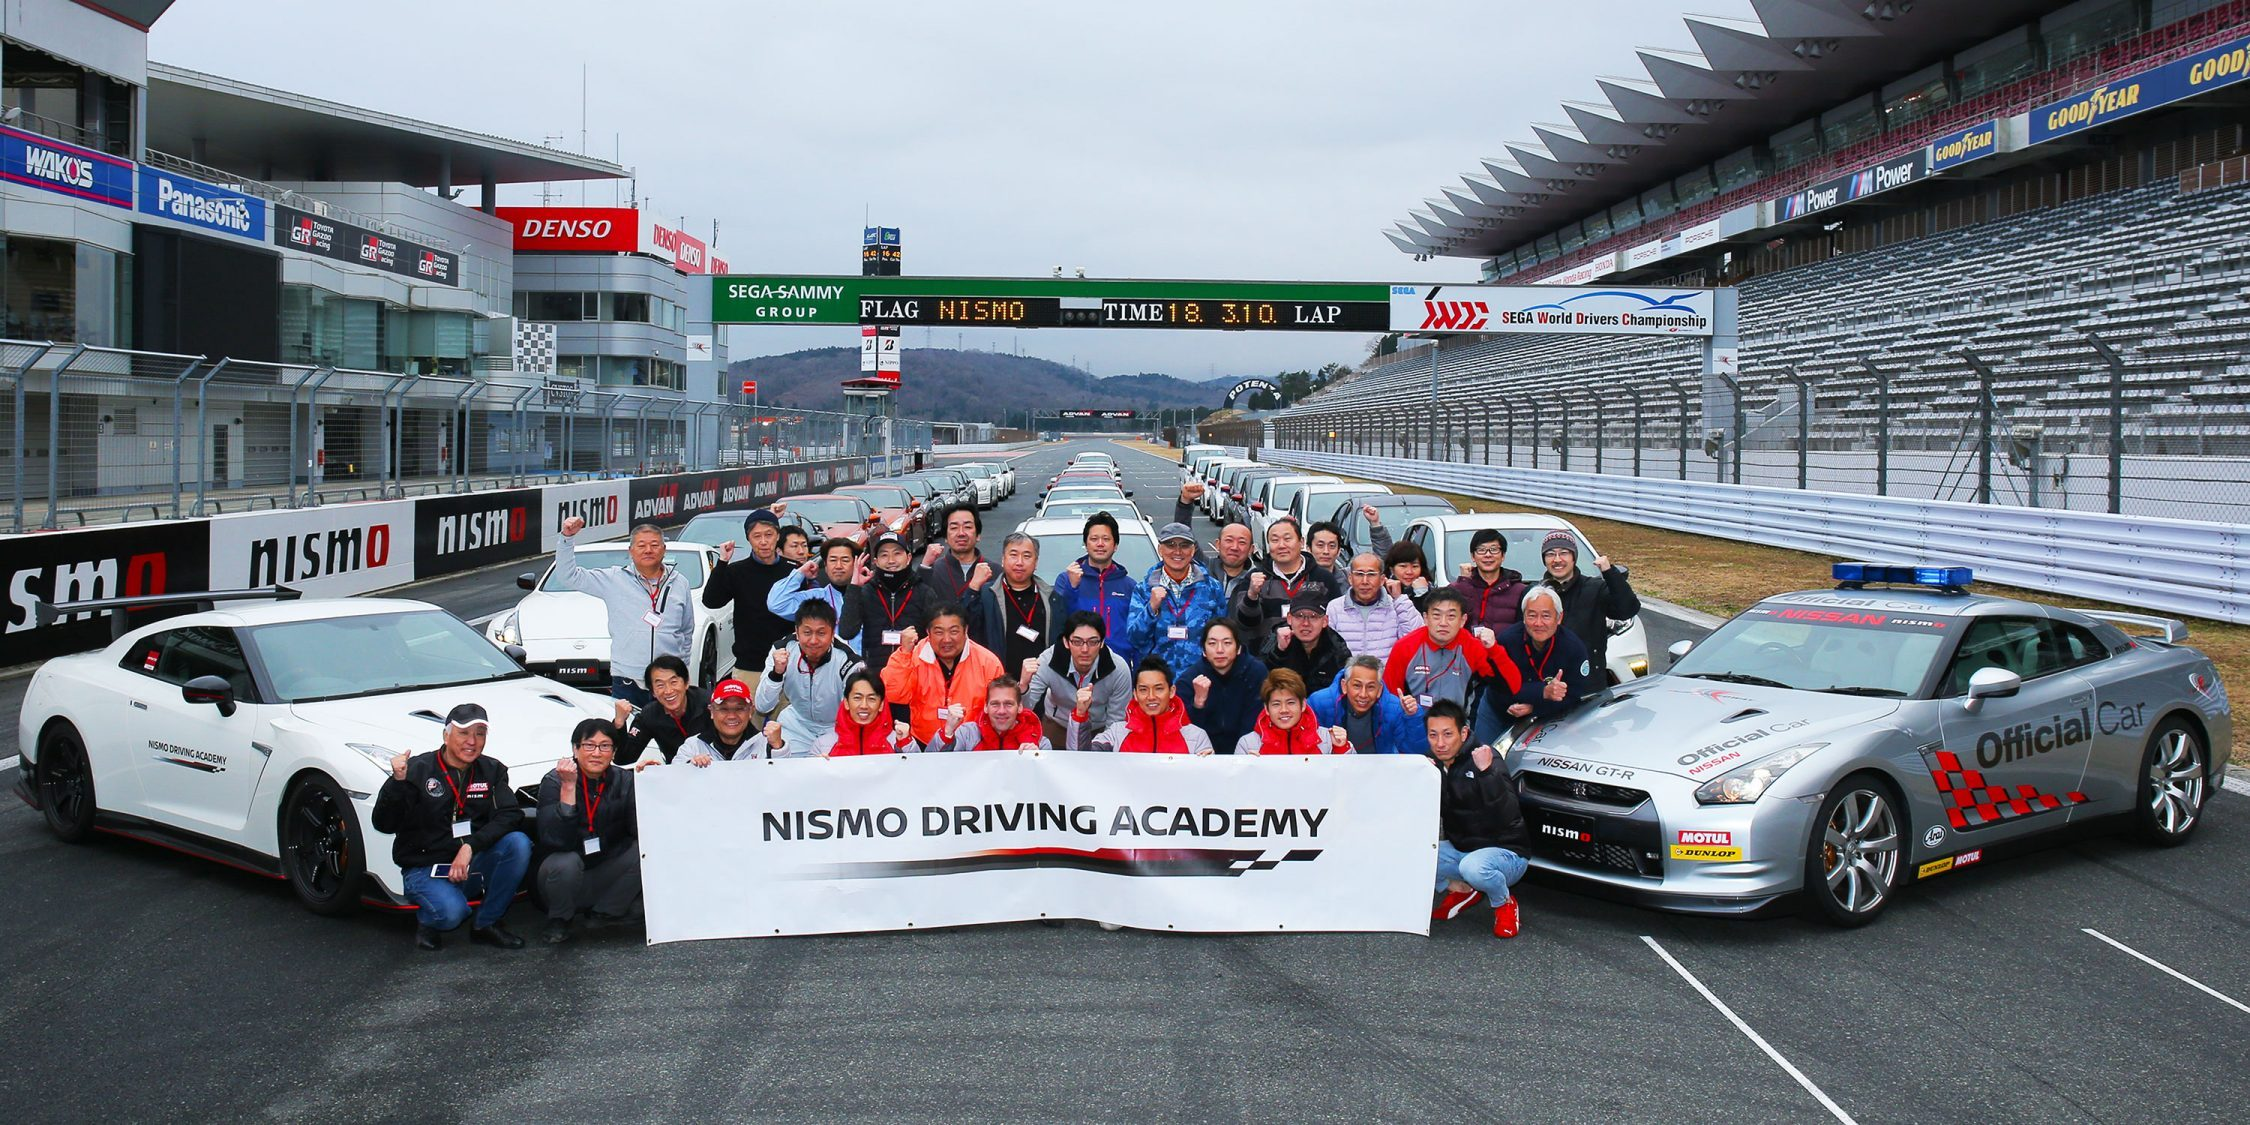 NISMO Driving Academy group shot